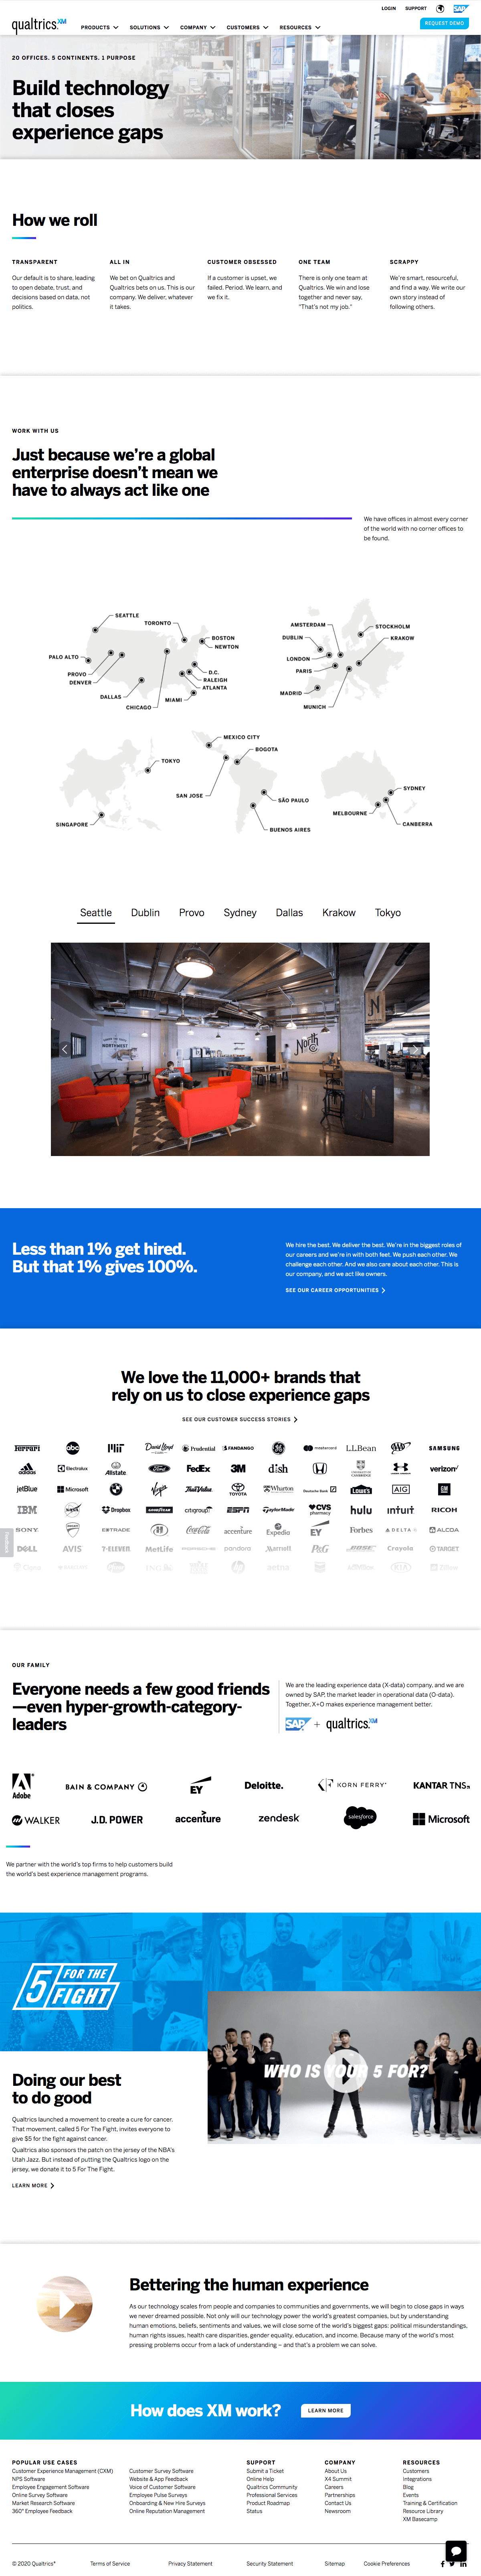 Qualtrics – About Us page